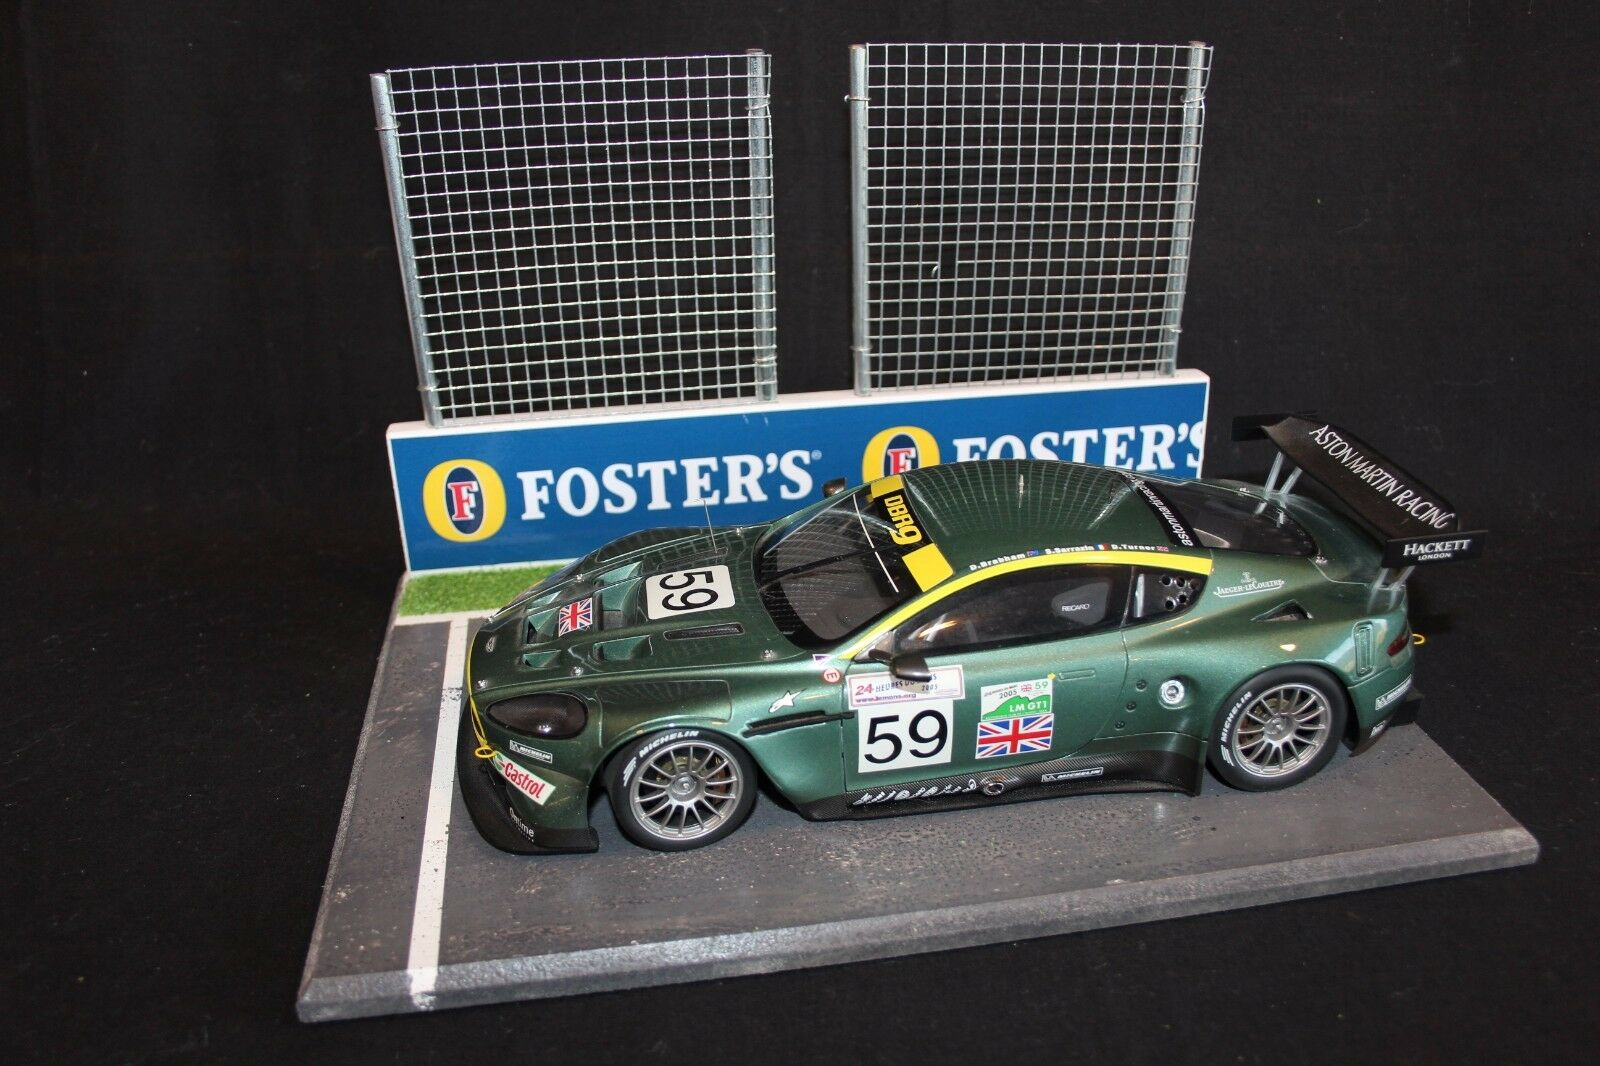 QSP Diorama 1 18 Starting grid with wall and 2 high fences (Foster's)